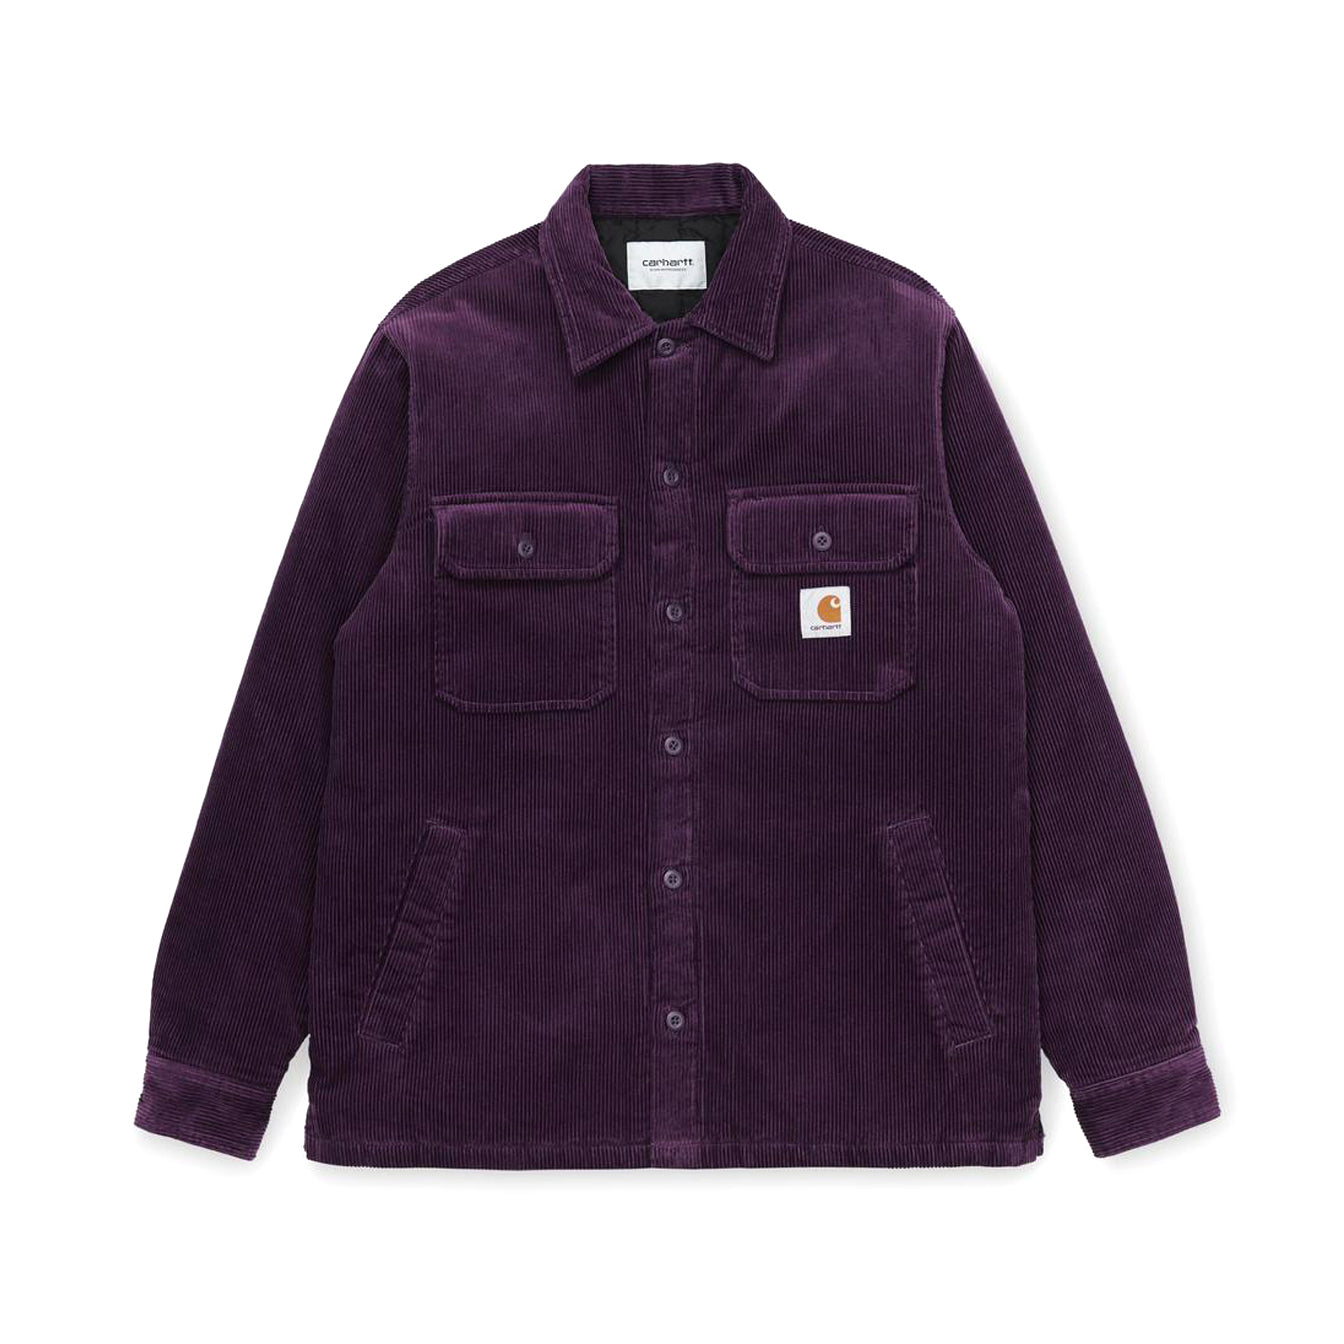 Whitsome Shirt Jacket (Boysenberry)